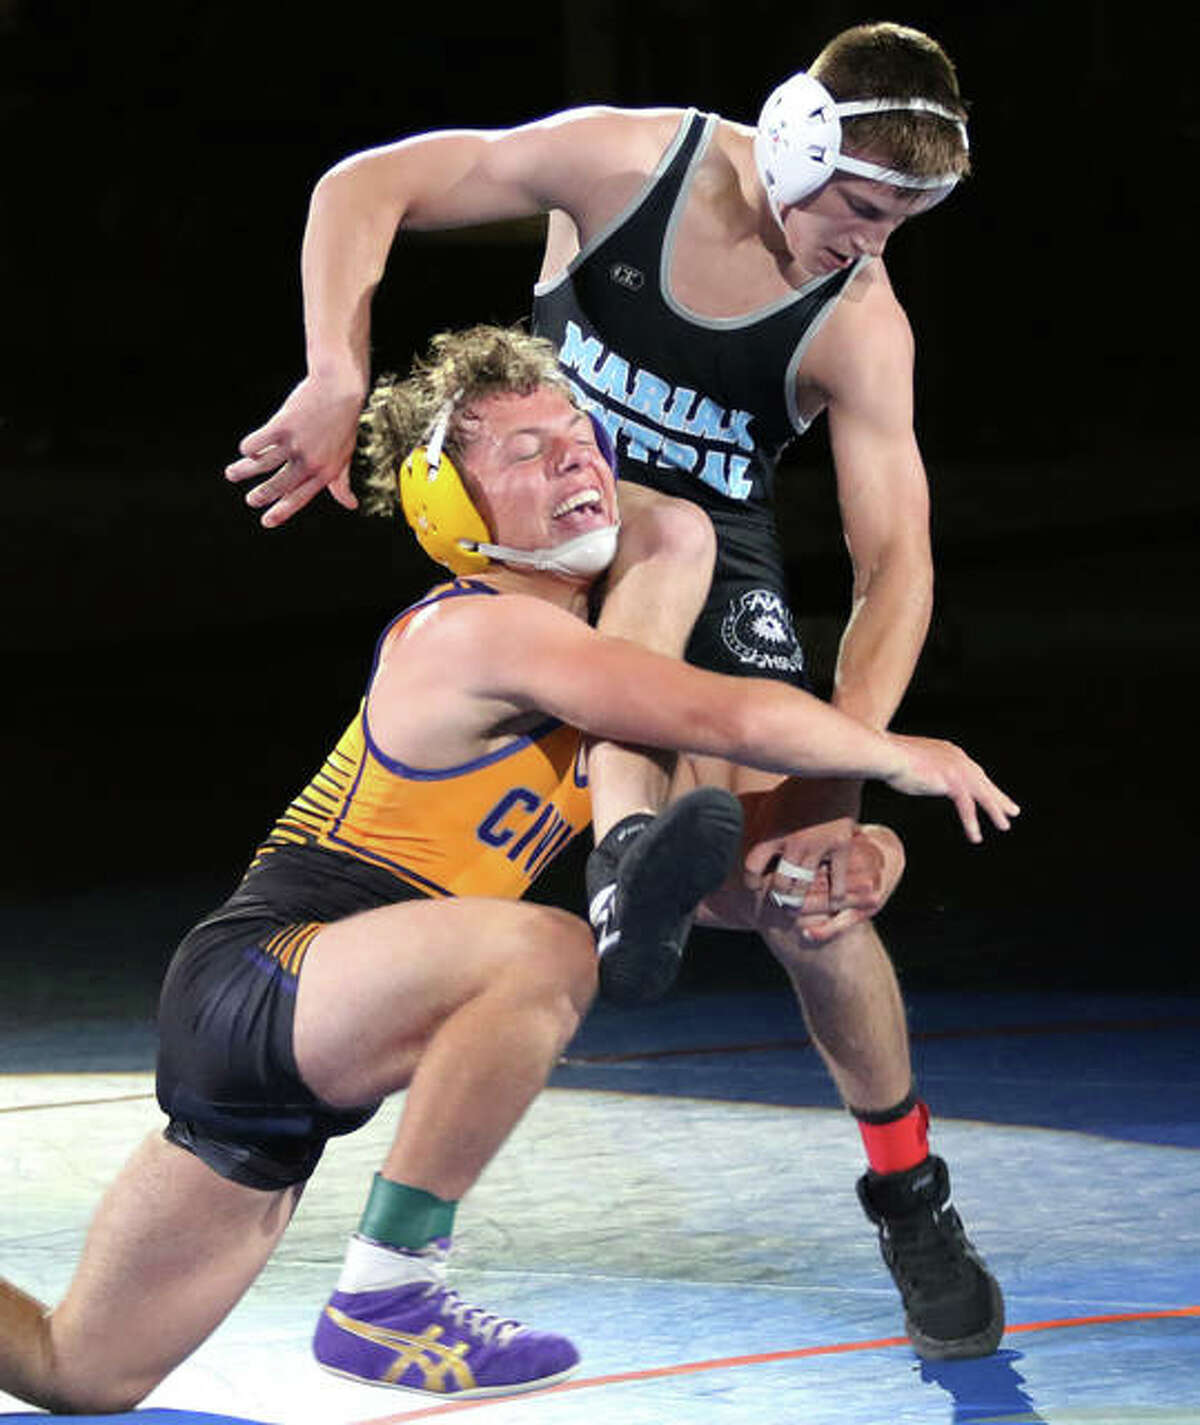 CM's Caleb Tyus (left) shoots in for a takedown against Woodstock Marian Central Catholic's Chris Moore late in Tyus' 7-2 win in the 138-pound title match Friday in the IWCOA Class 2A state meet in Springfield.